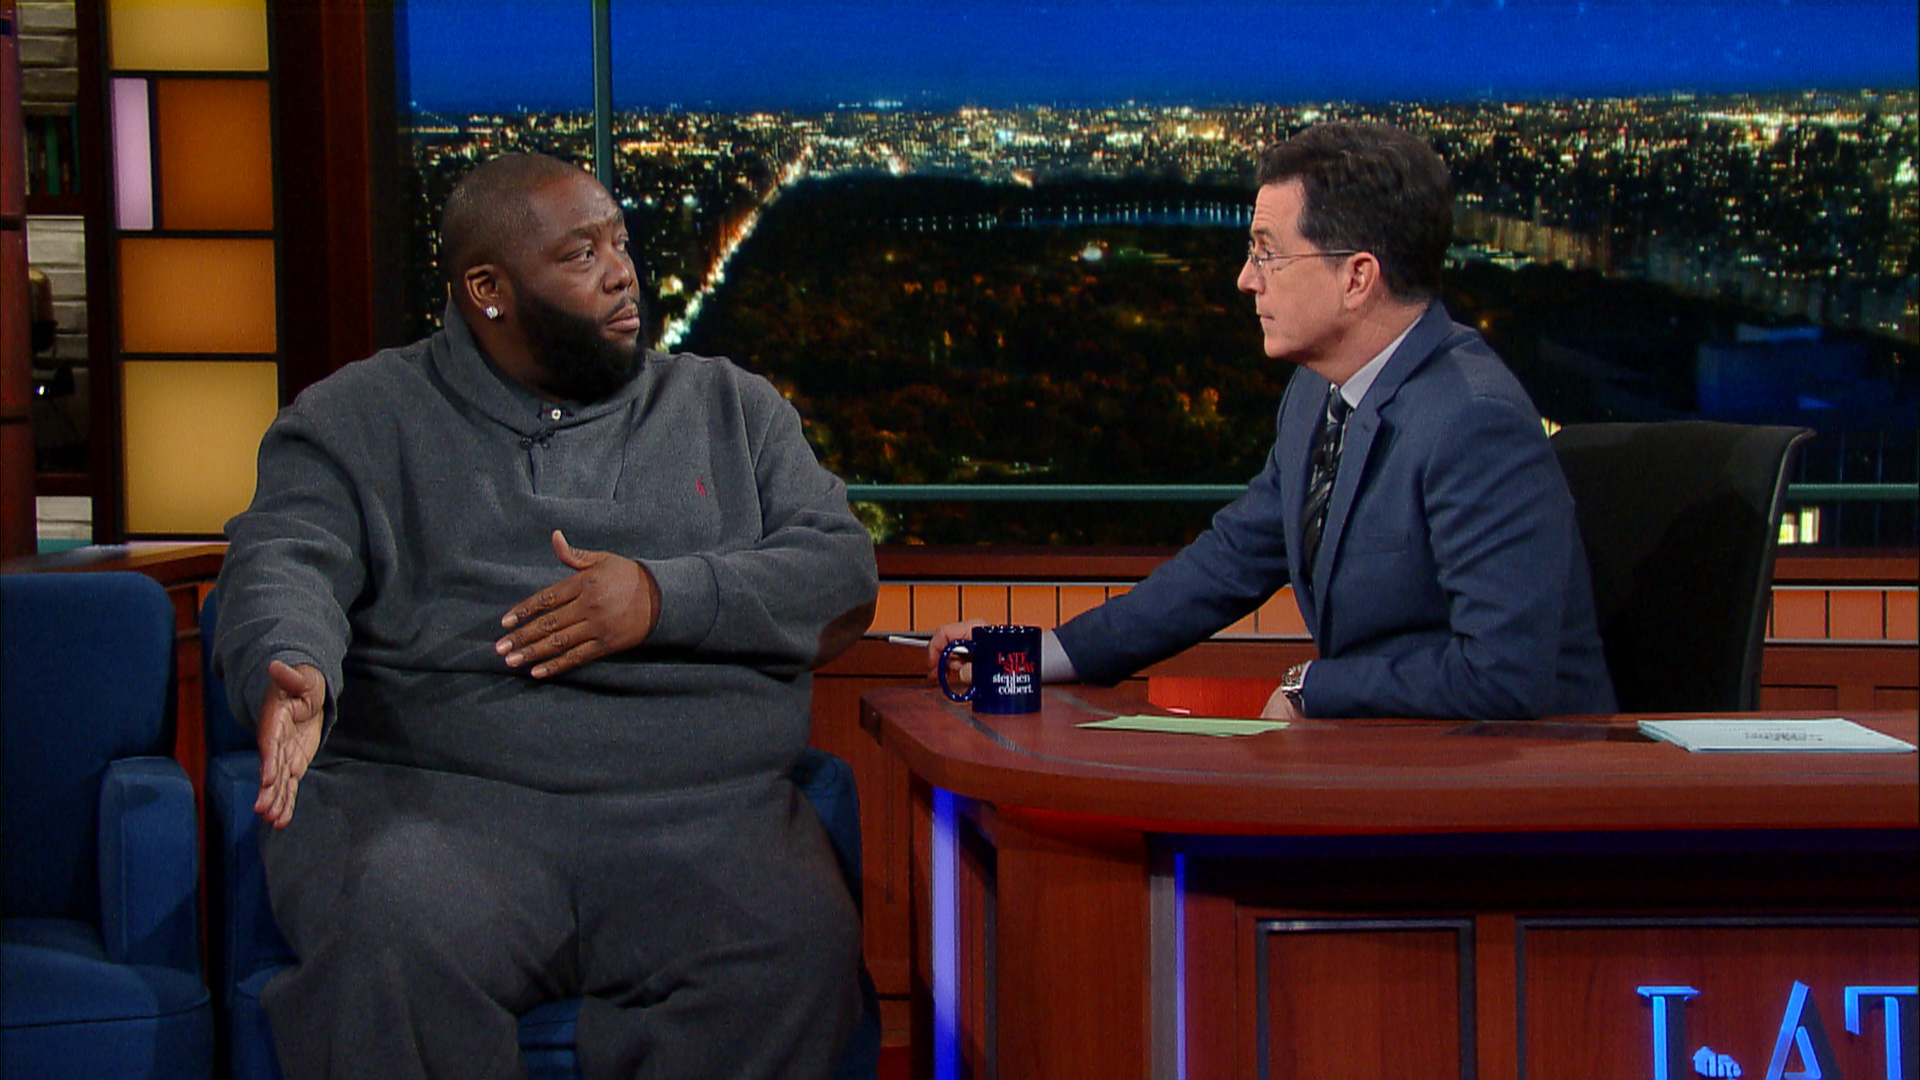 Killer Mike Educates Stephen Colbert